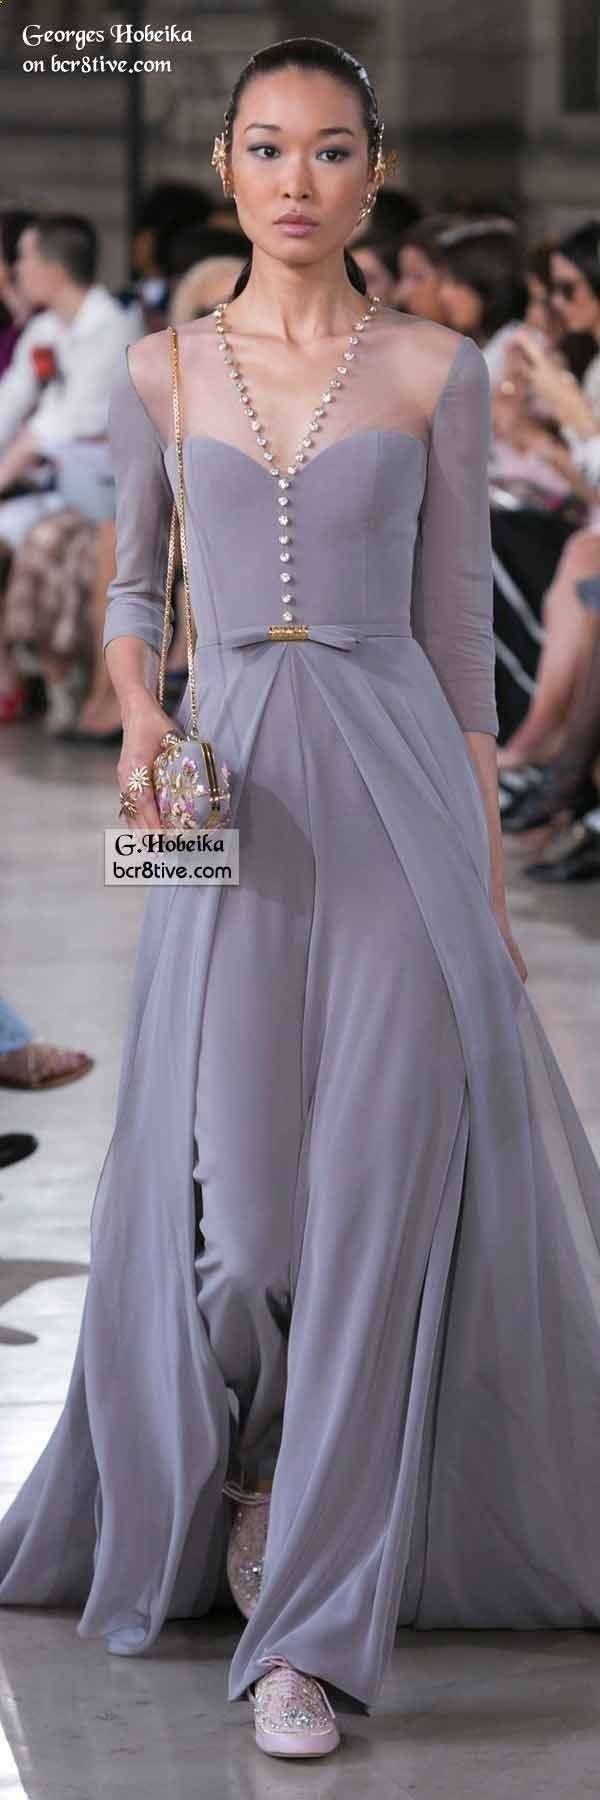 beautiful dresses gowns 15 best outfits - beautiful dresses